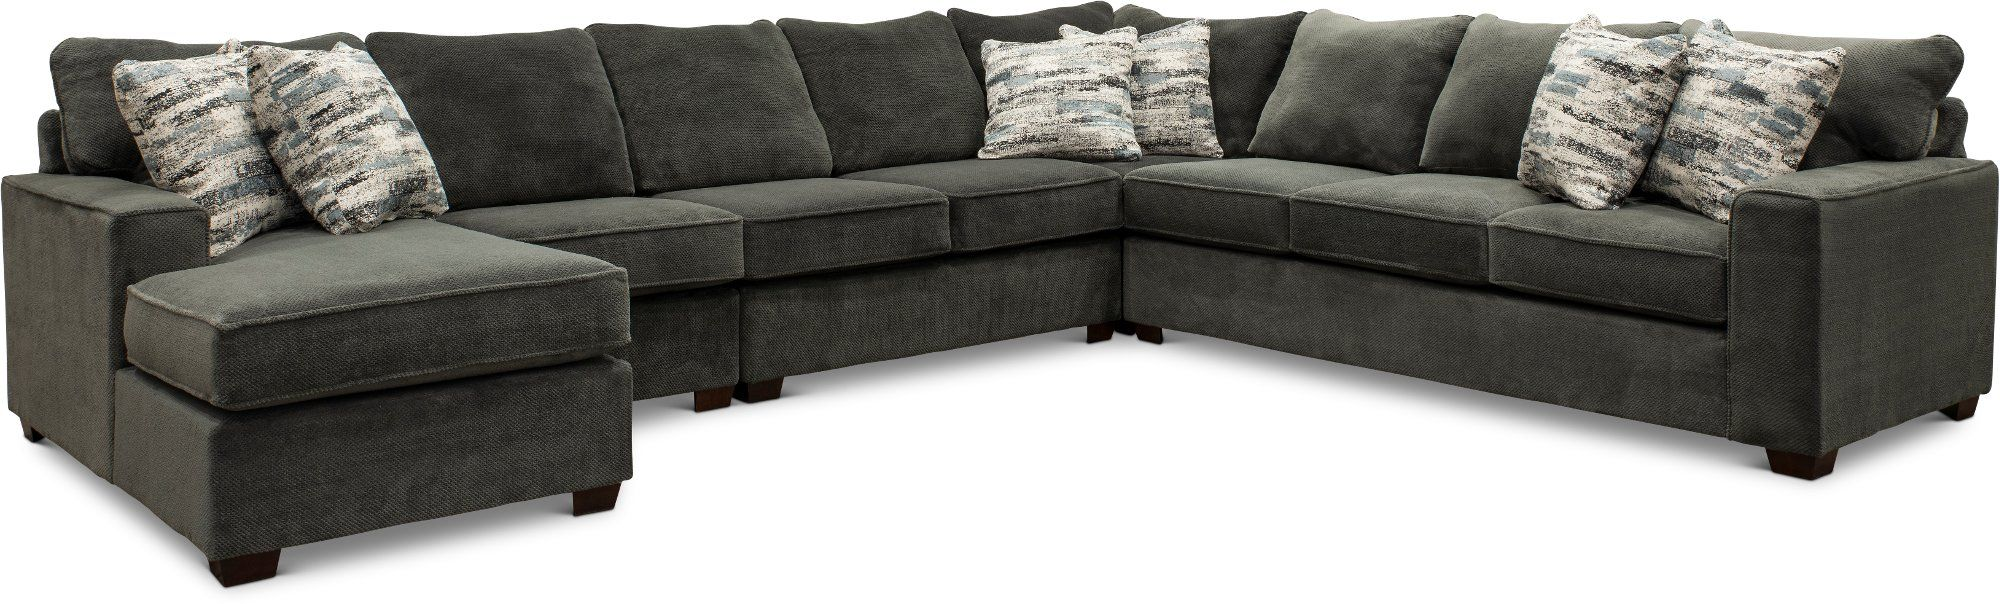 Dark Gray 5 Piece Sectional Sofa With Laf Chaise Autumn